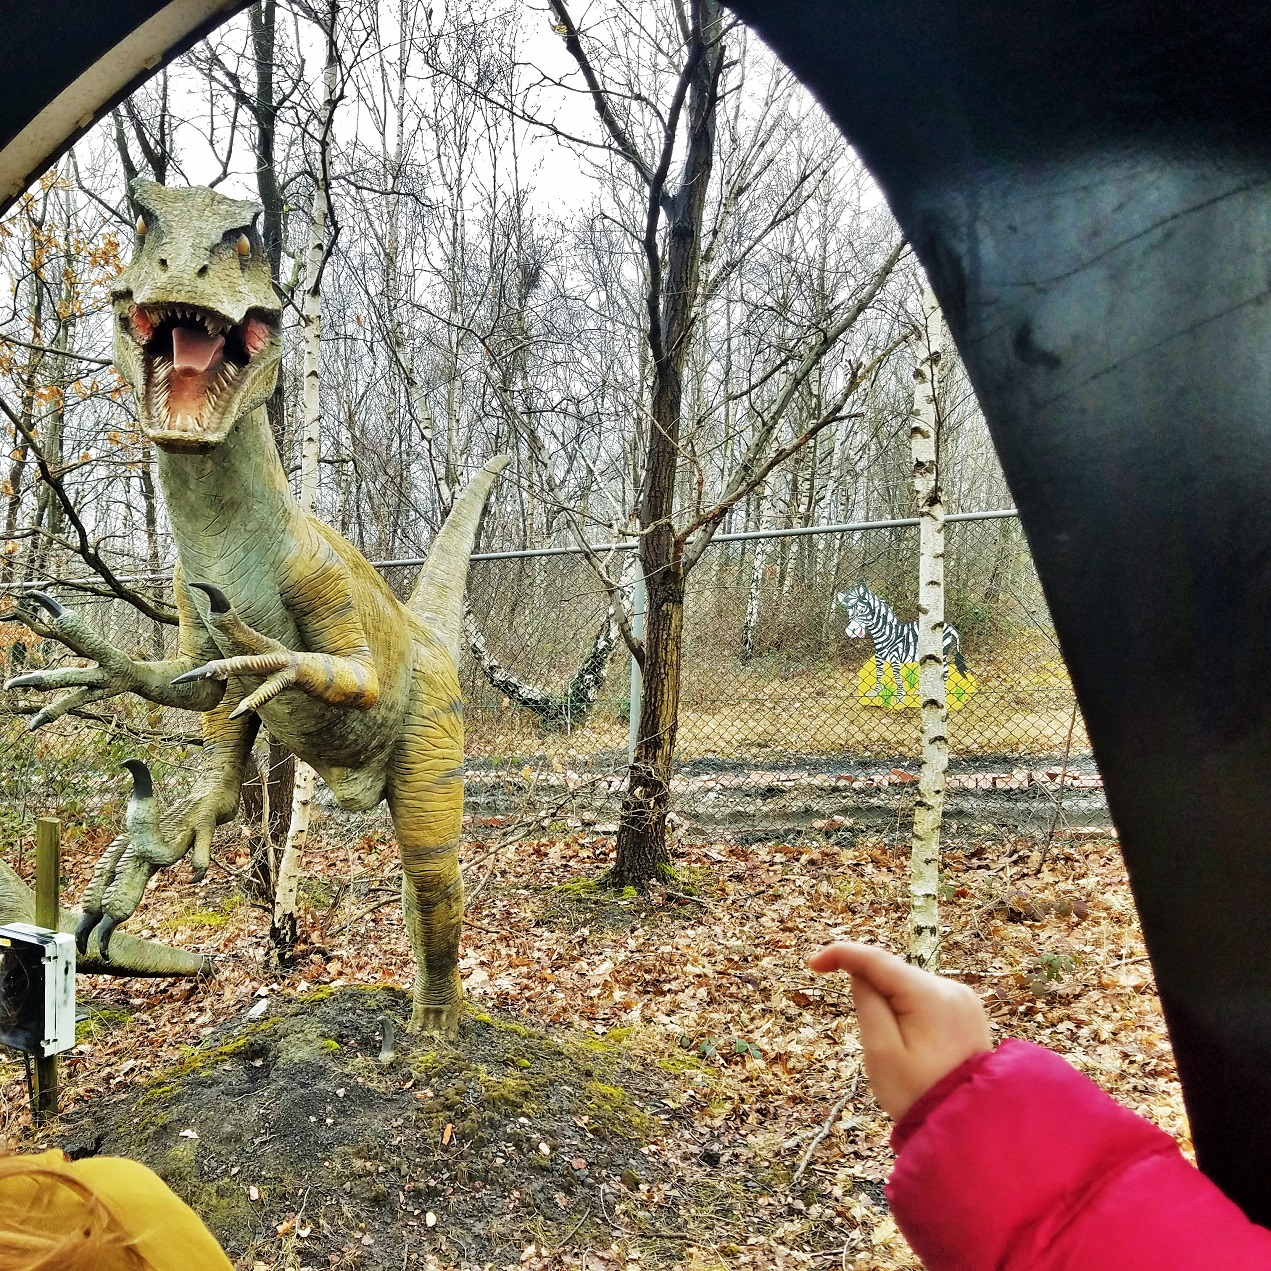 diggerland in the rain - dinosaur safari experience yorkshire